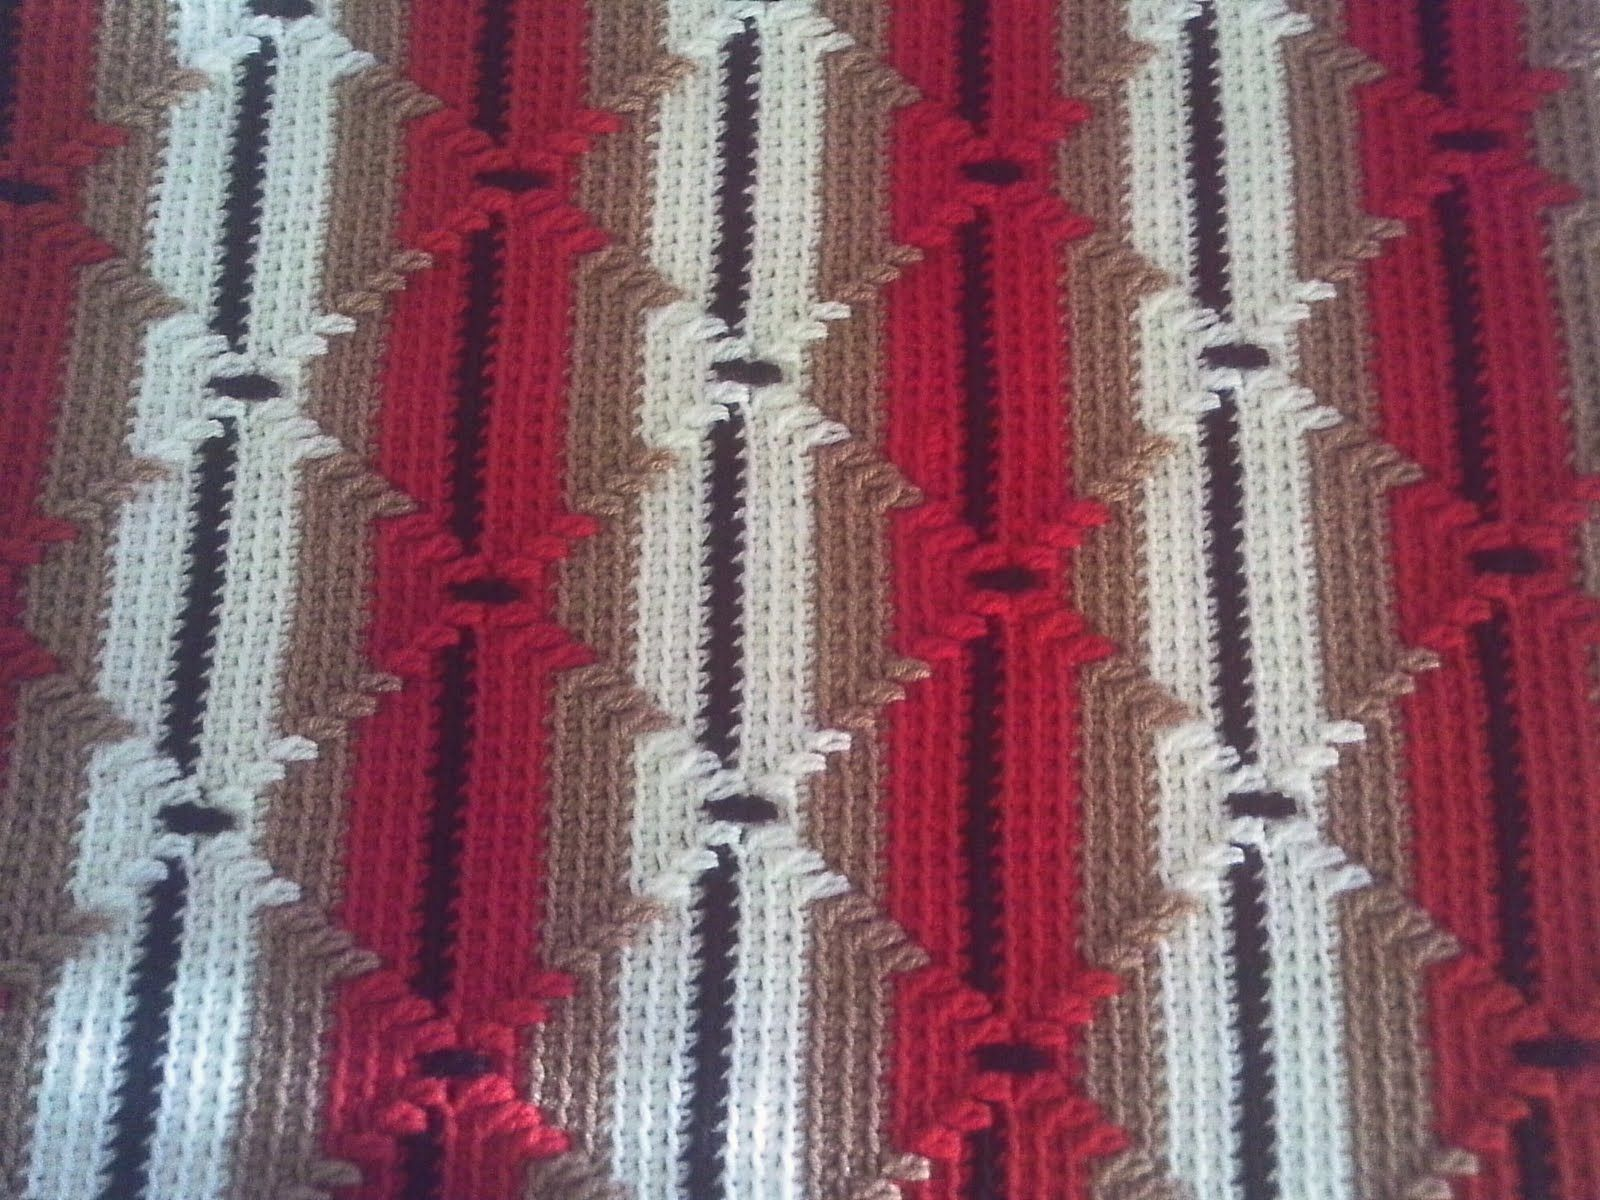 Indian blanket afghan pattern timeless creations navajo afghan indian blanket afghan pattern timeless creations navajo afghan bankloansurffo Gallery